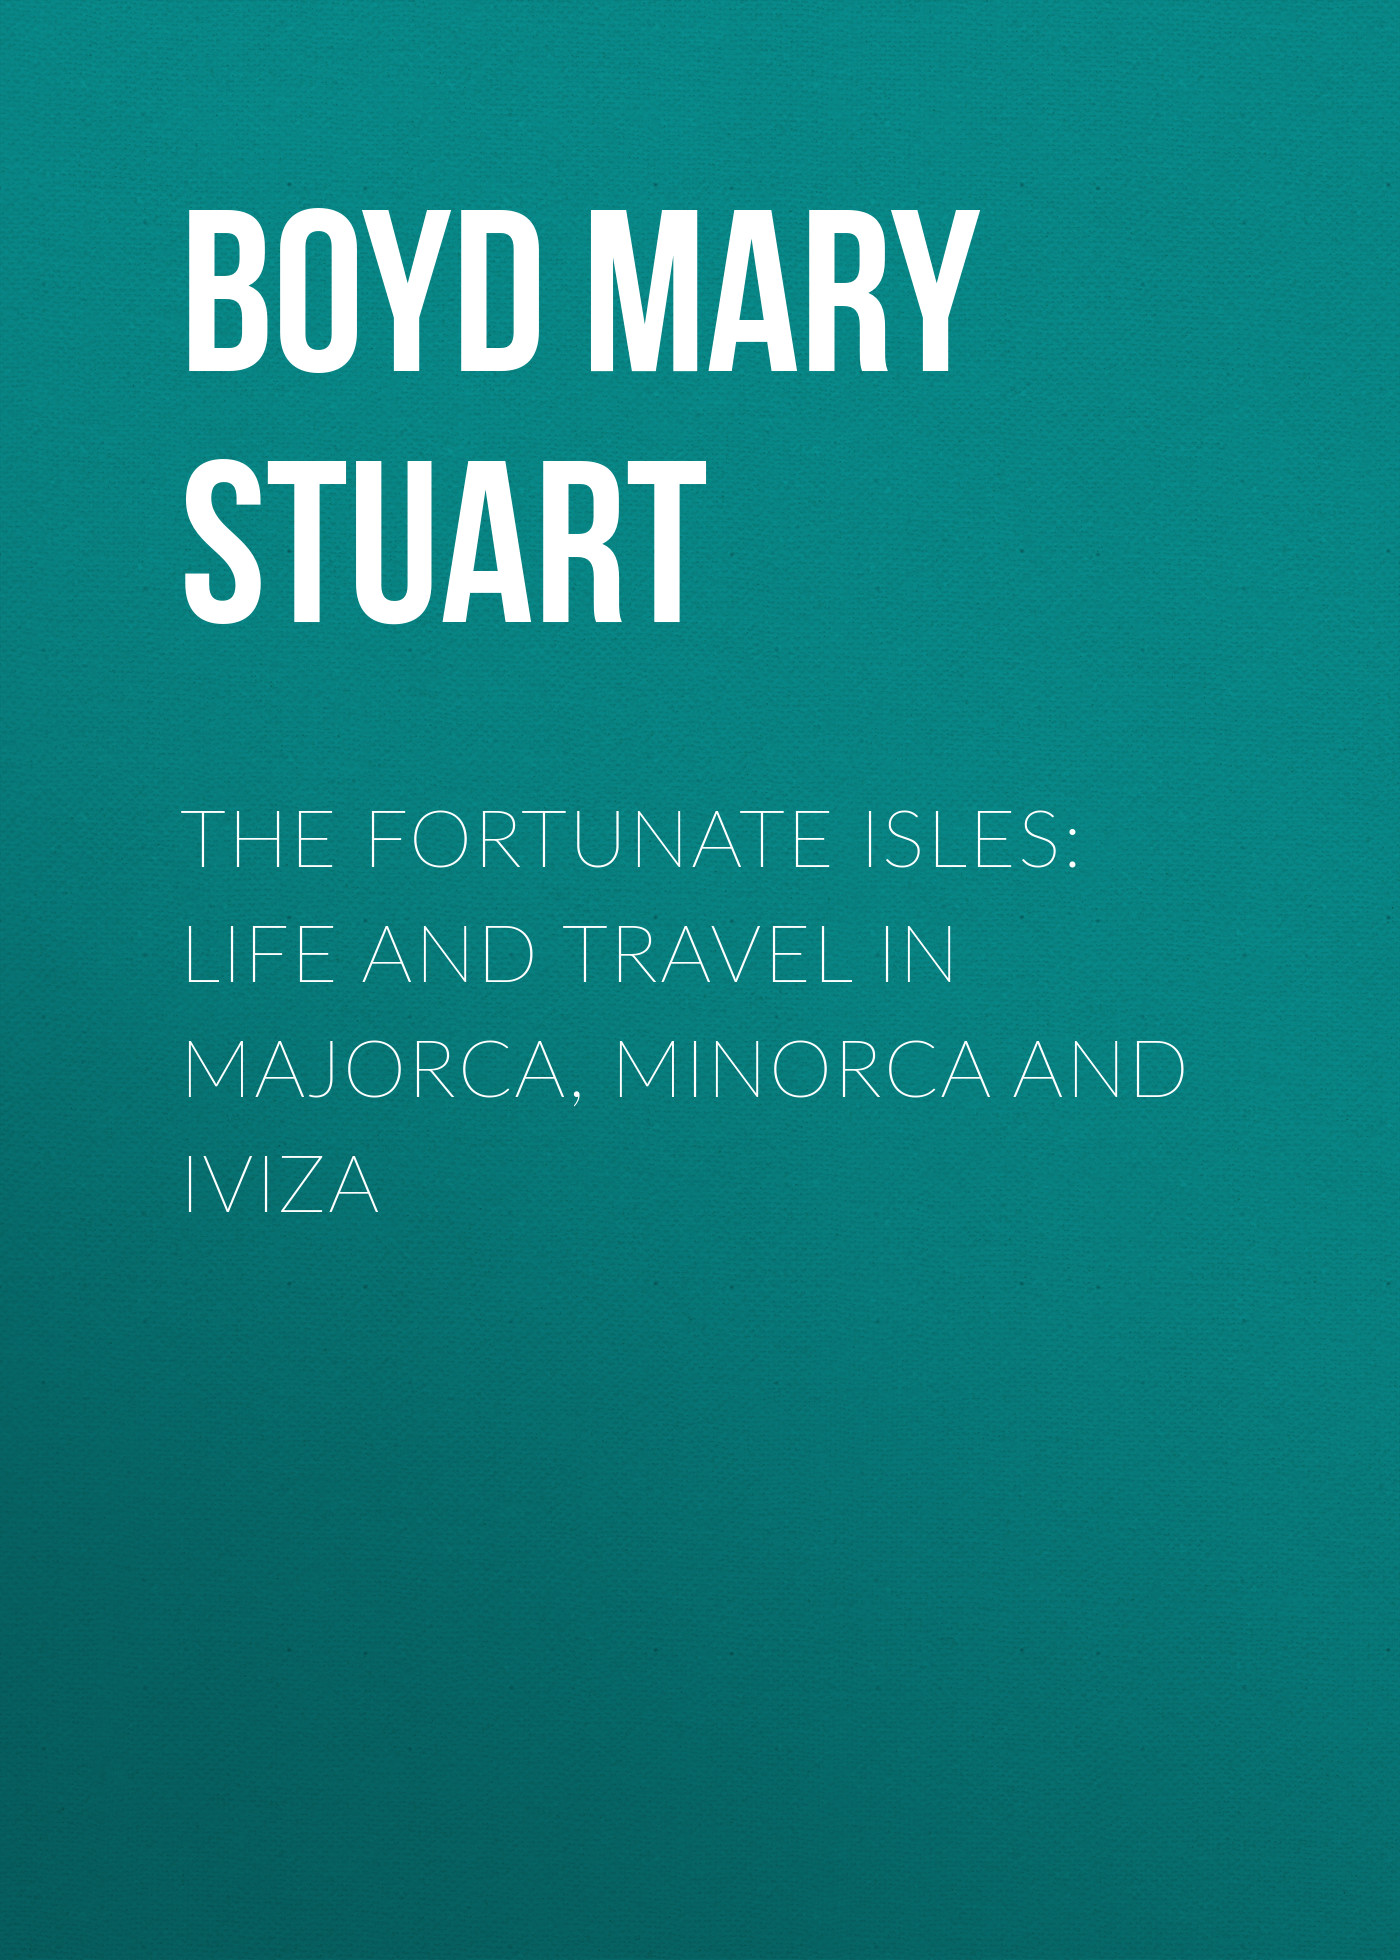 Boyd Mary Stuart The Fortunate Isles: Life and Travel in Majorca, Minorca and Iviza матрас diamond rush solid cocos 3 dr 140x190x3 см